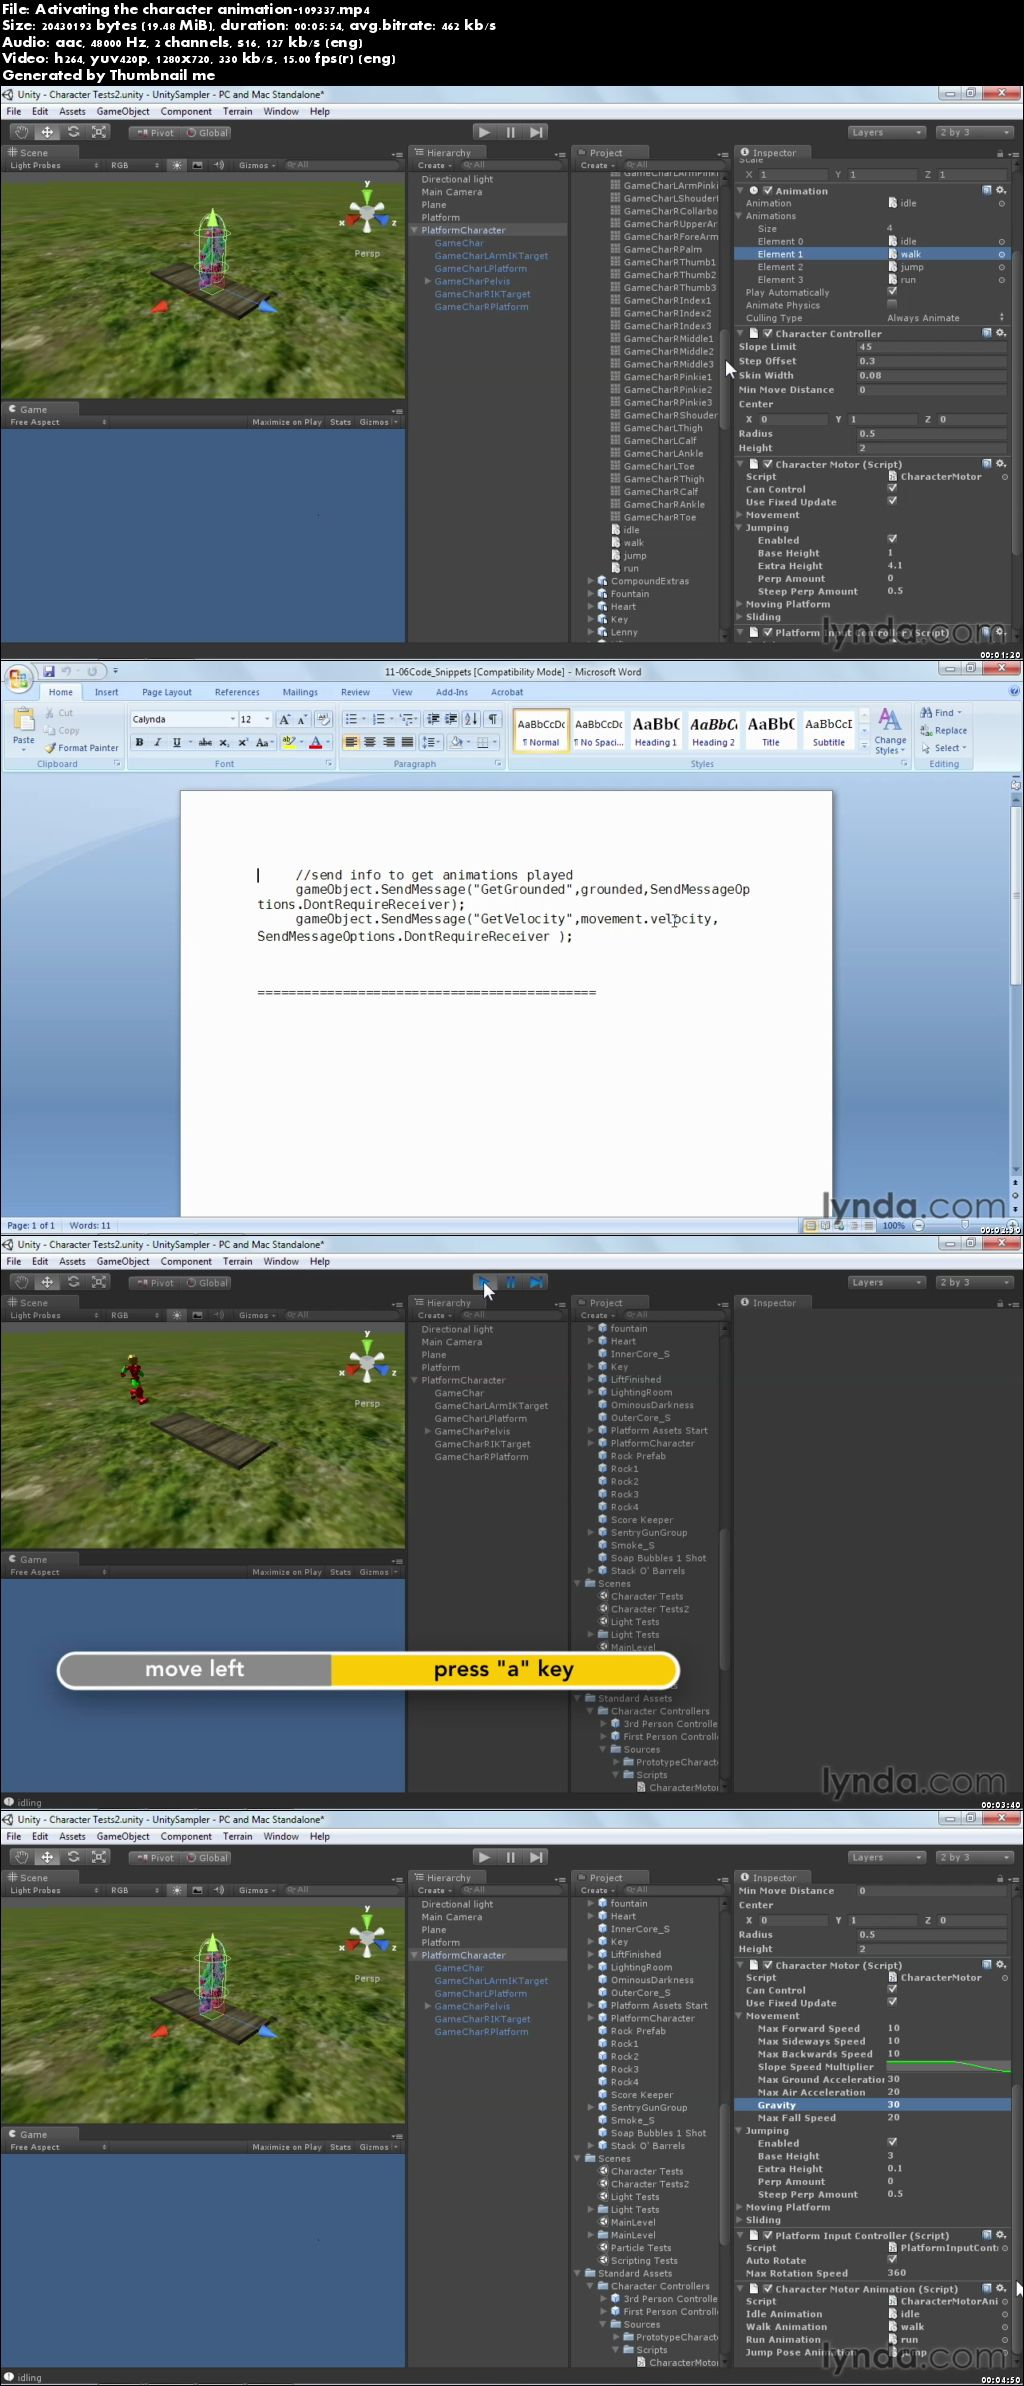 Lynda - Unity 3D 3.5 Essential Training